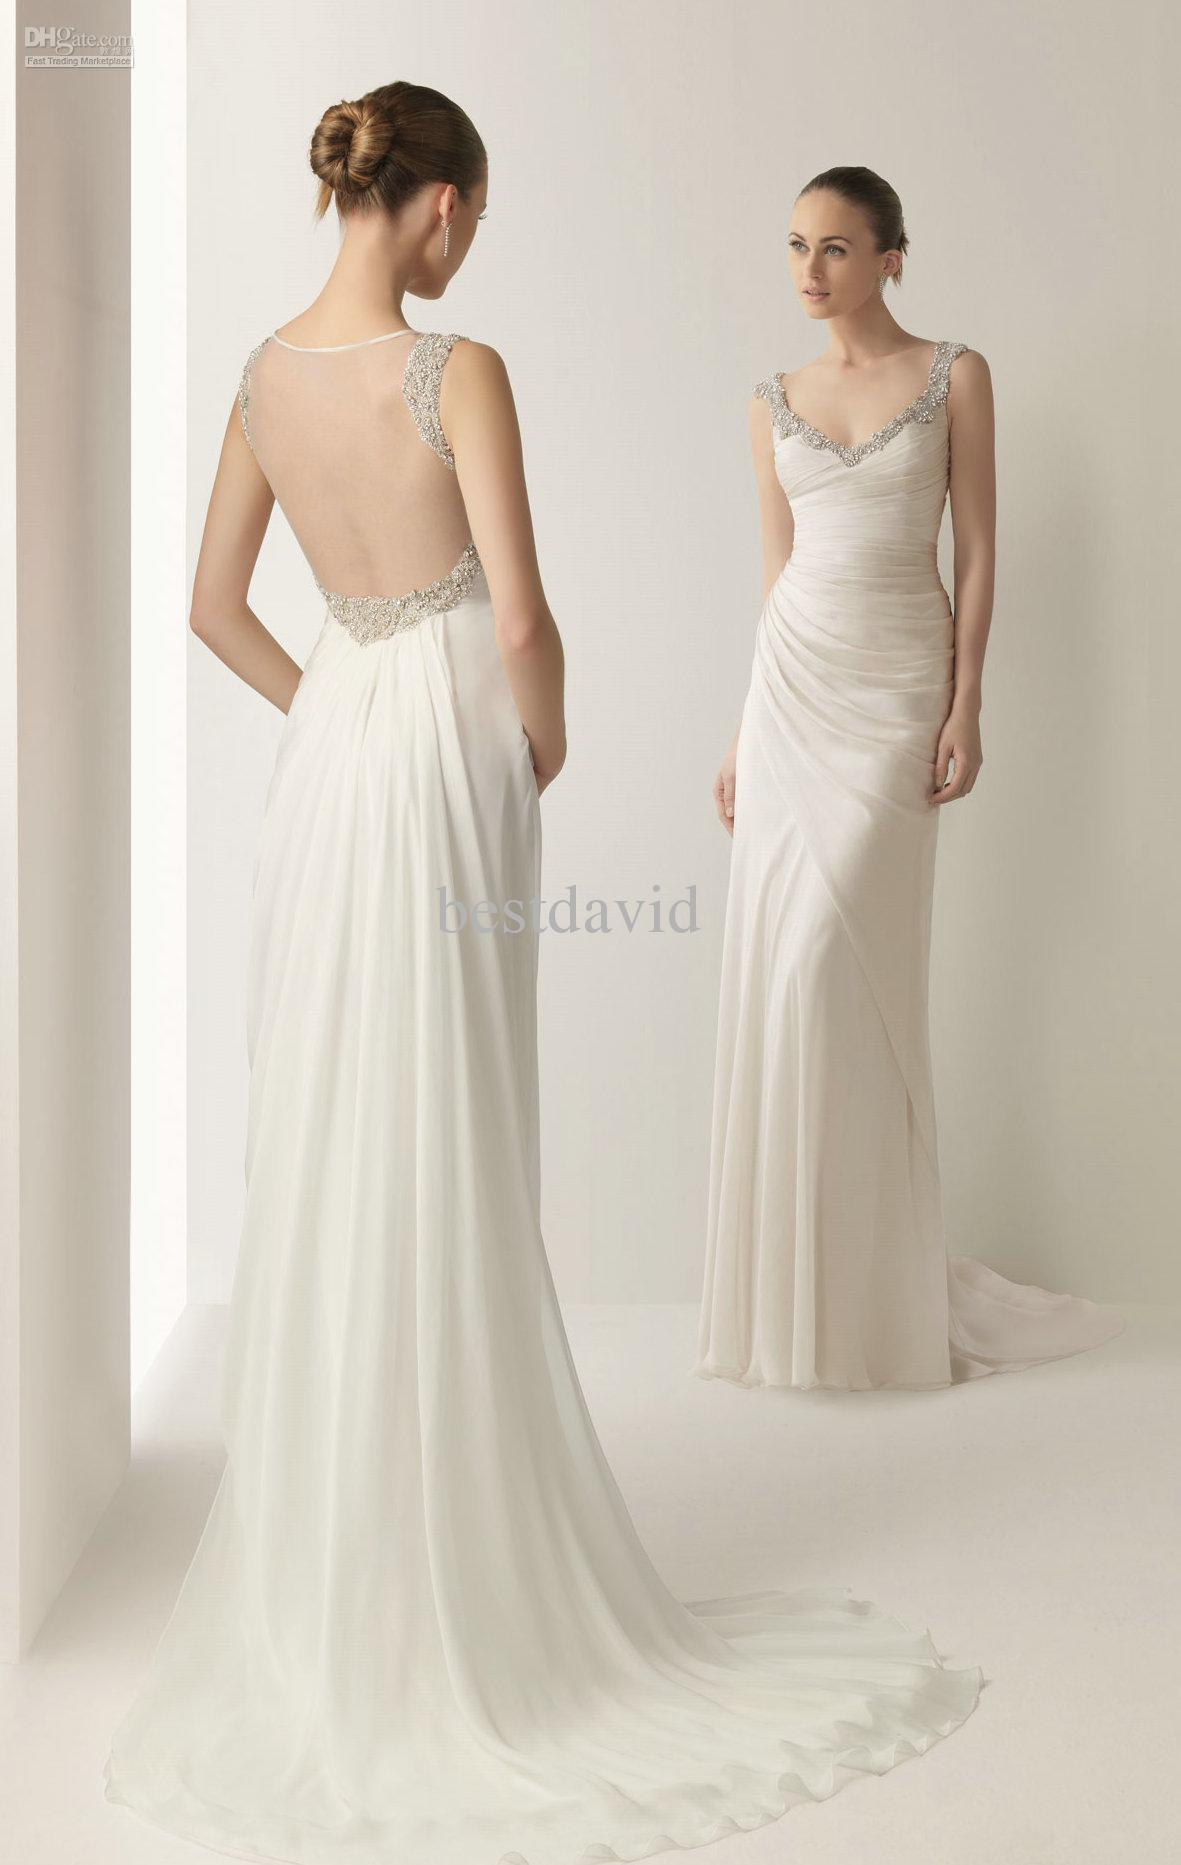 sheath wedding dresses photo - 1